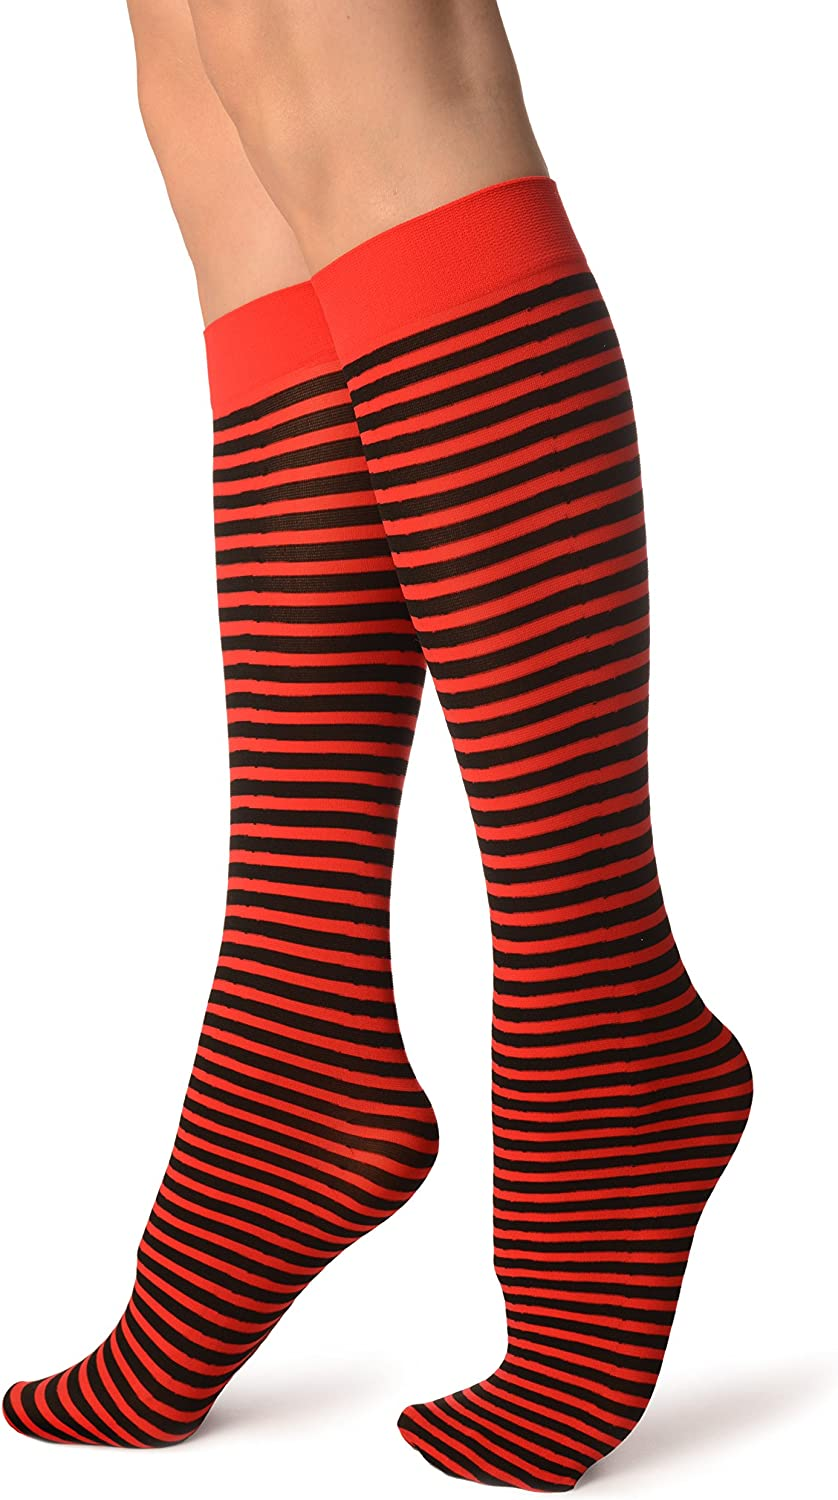 SO002727 Black and Red Thin Stripes Socks Knee High